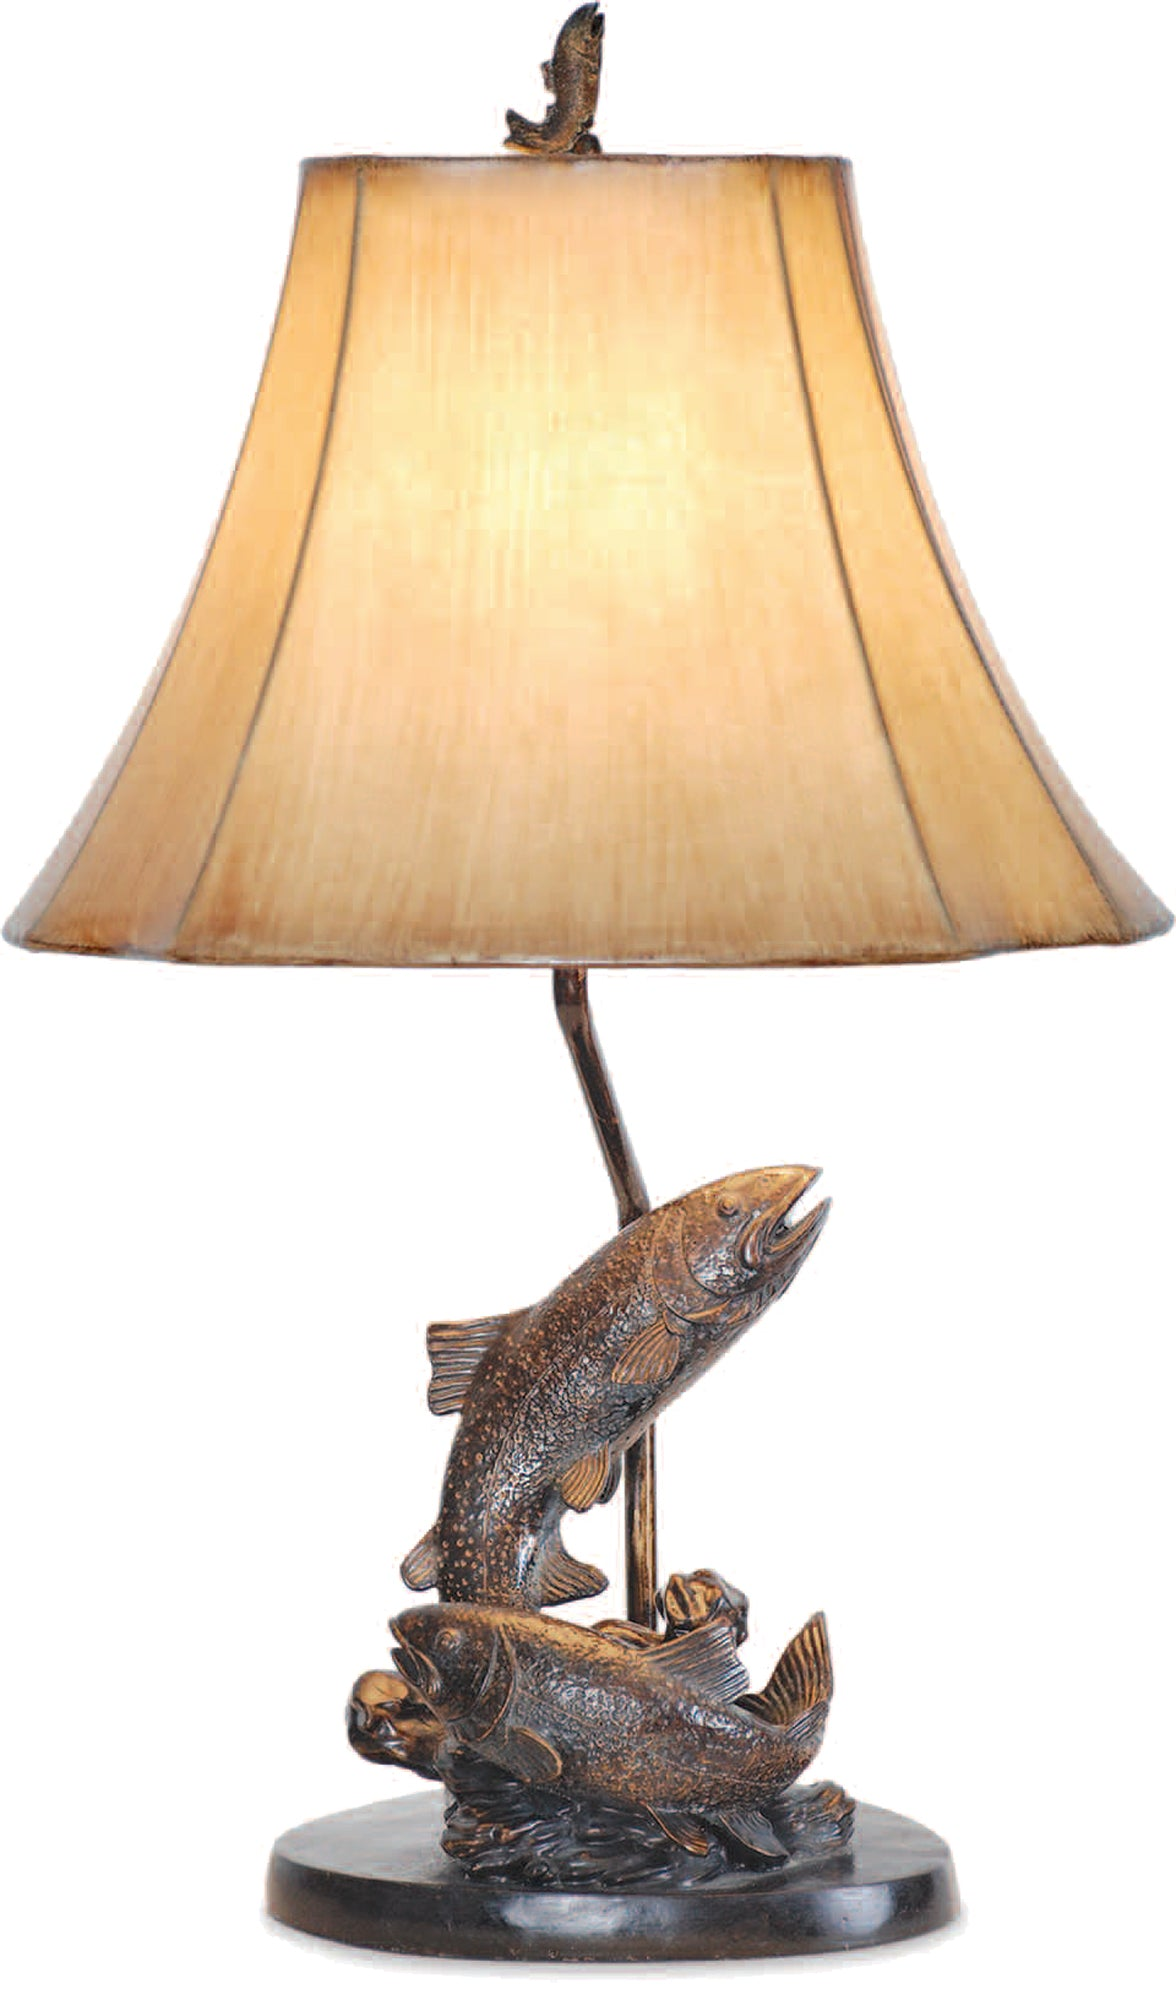 L7077LAZS -  SWIMMING FISH TABLE LAMP by Vintage Direct Lamps